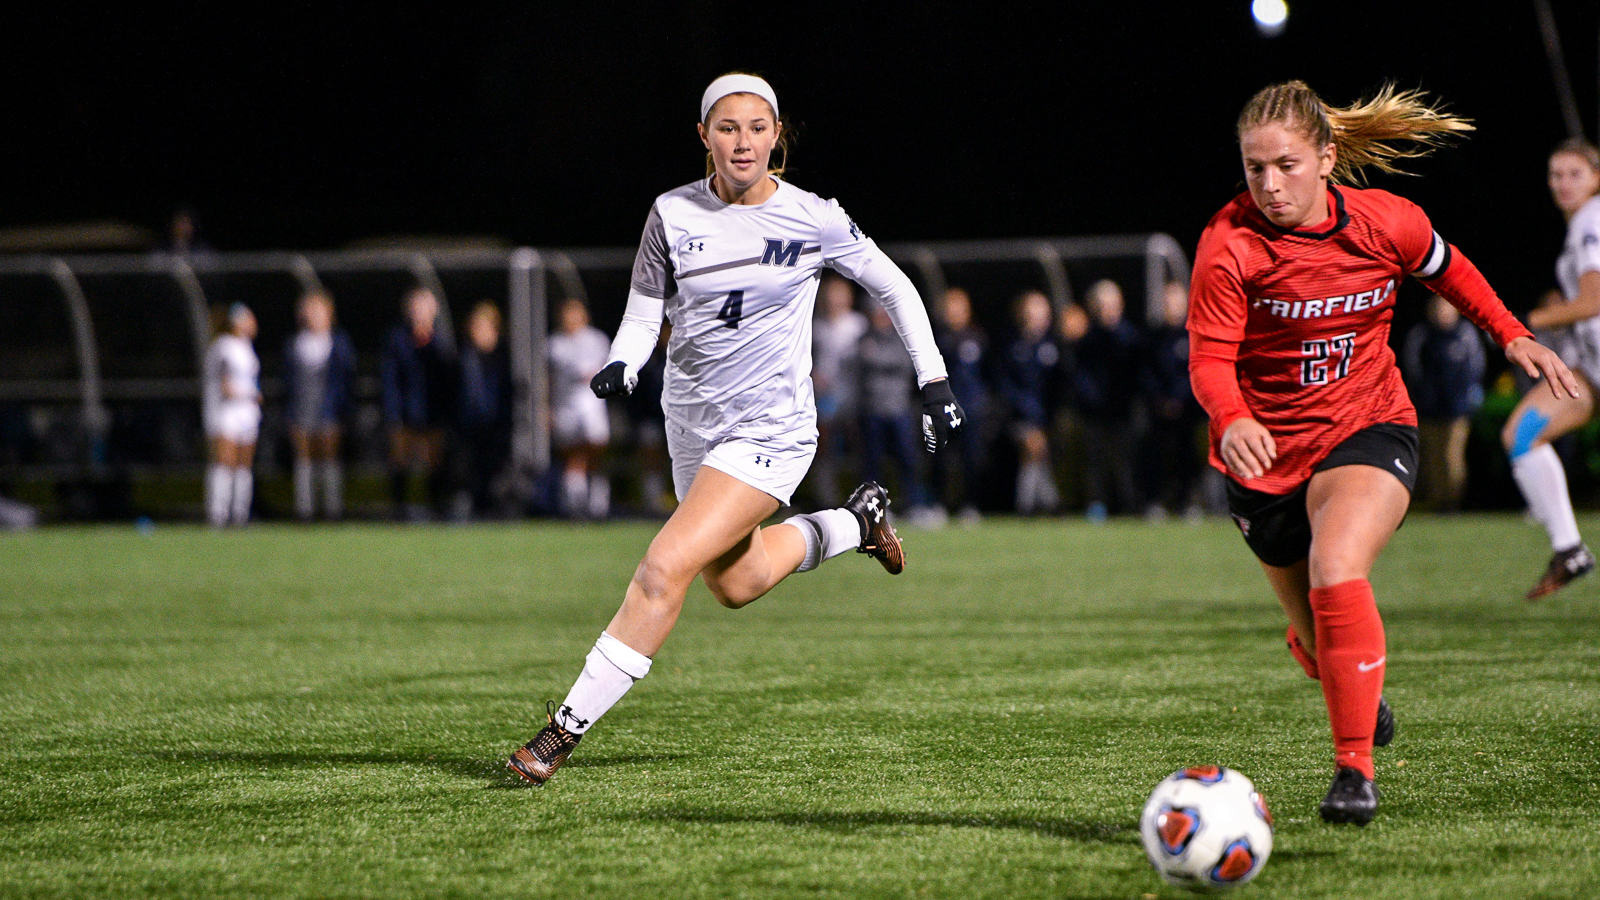 Esther Wellman Women S Soccer Monmouth University Athletics Images, Photos, Reviews